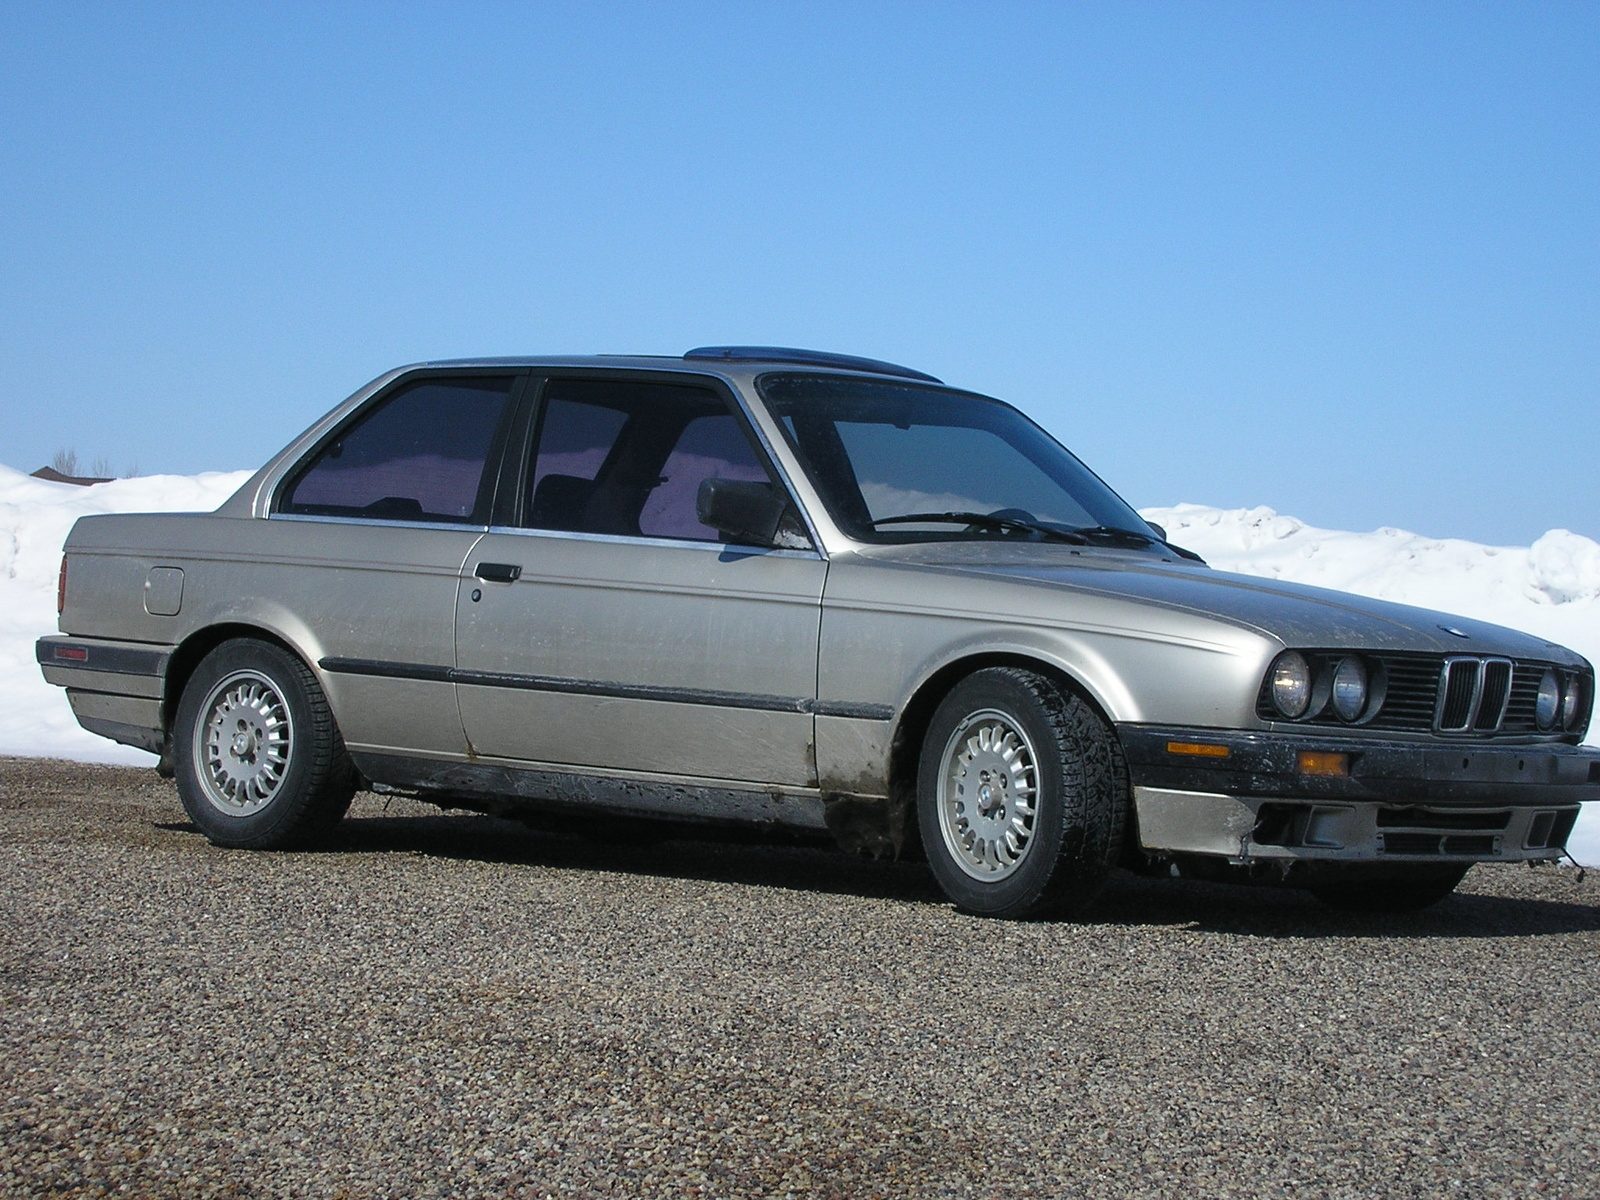 BMW 3 series 325ix 1989 photo - 9